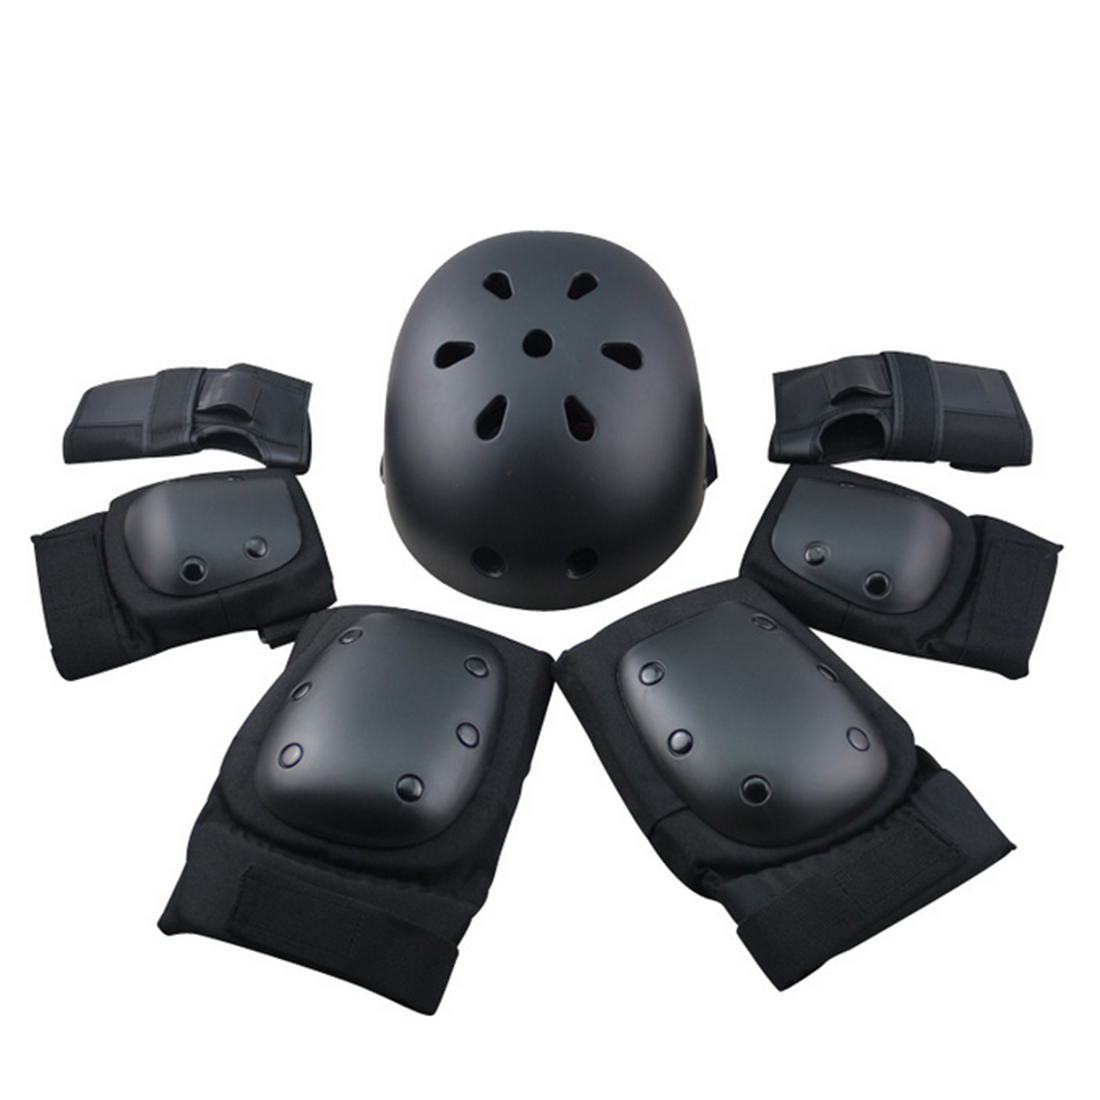 7Pcs Set Sport Safety Protective Gear Elbow Wrist Knee Pads and Helmet Guard for Kids Adult Skateboard Skating Riding - Black S